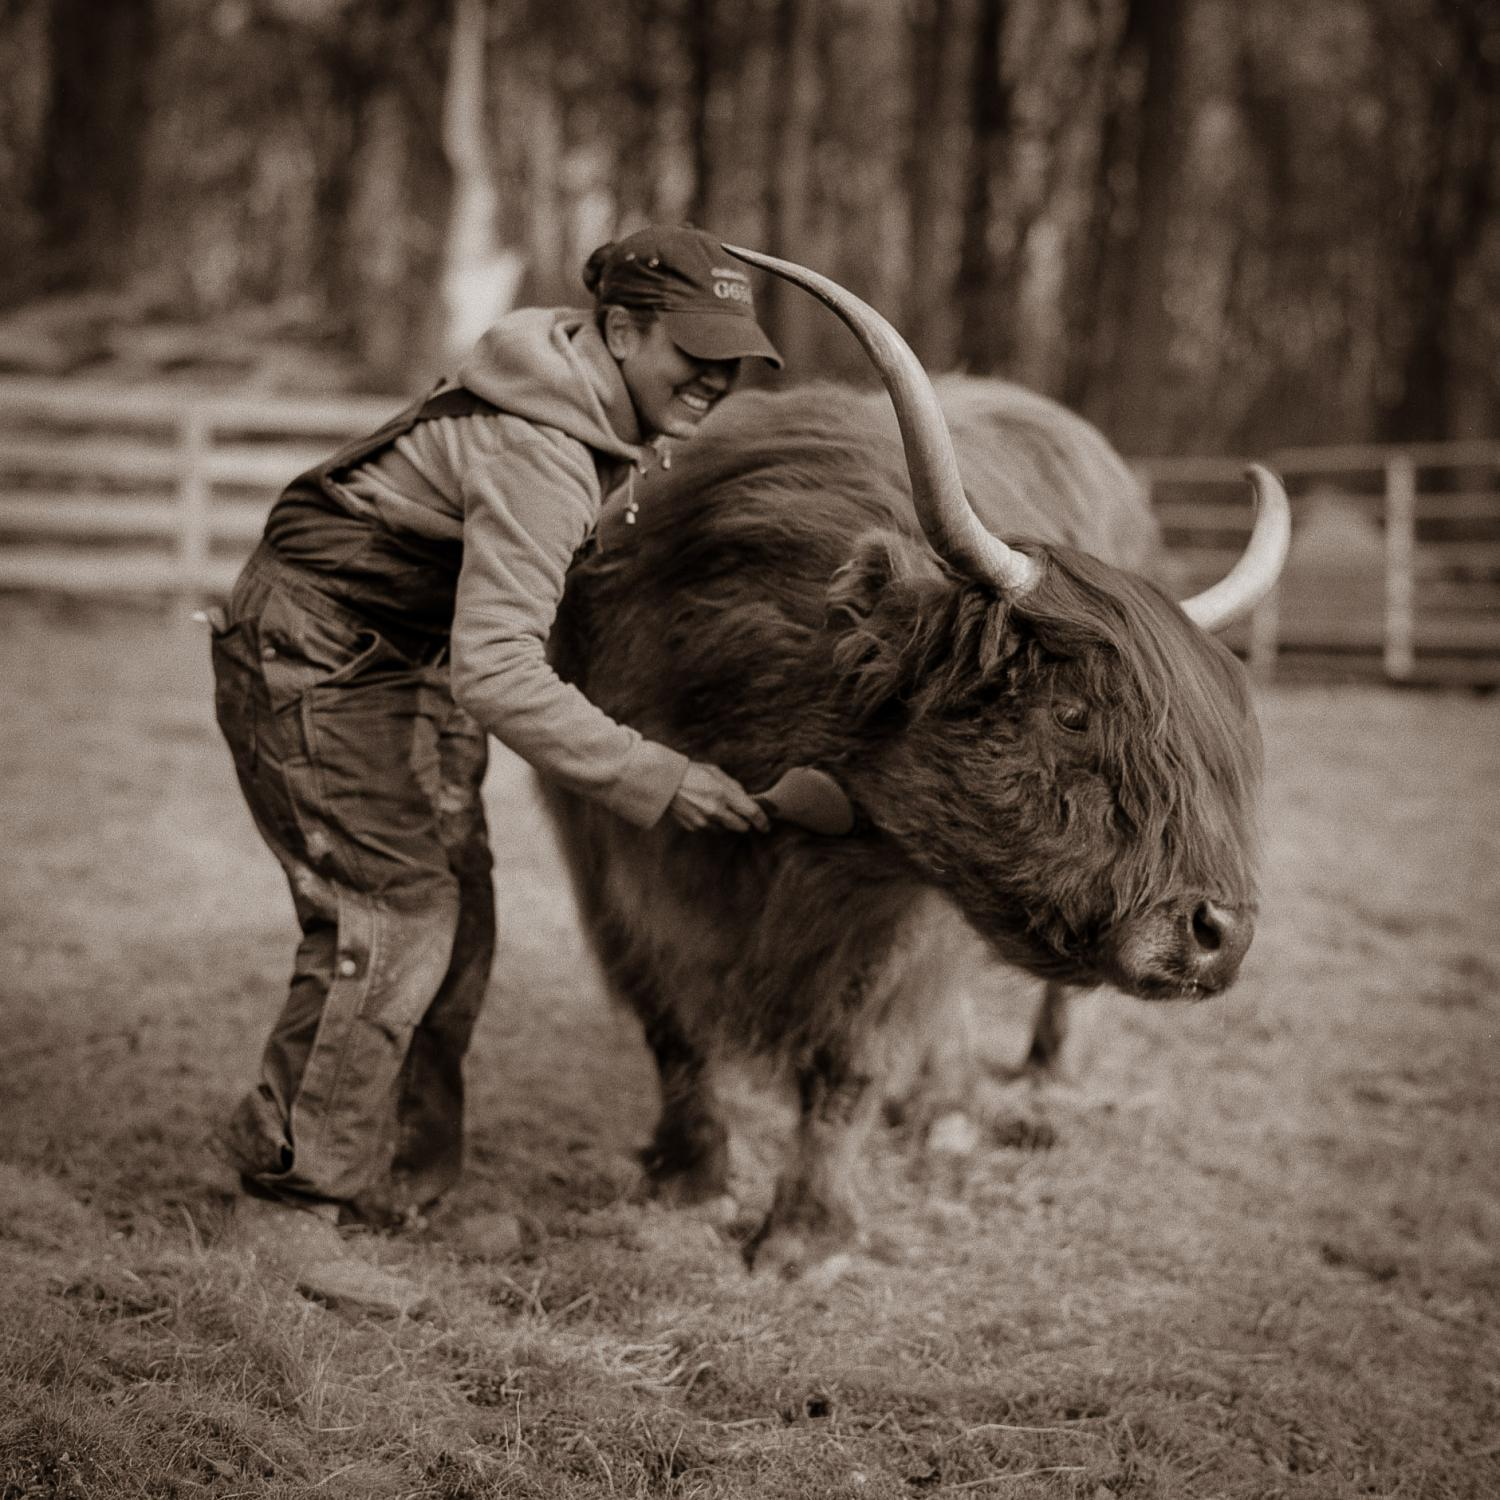 Britt Janssen grooming Tallulah, a rescued Highland cow, at JP Farm Animal Sanctuary in Connecticut